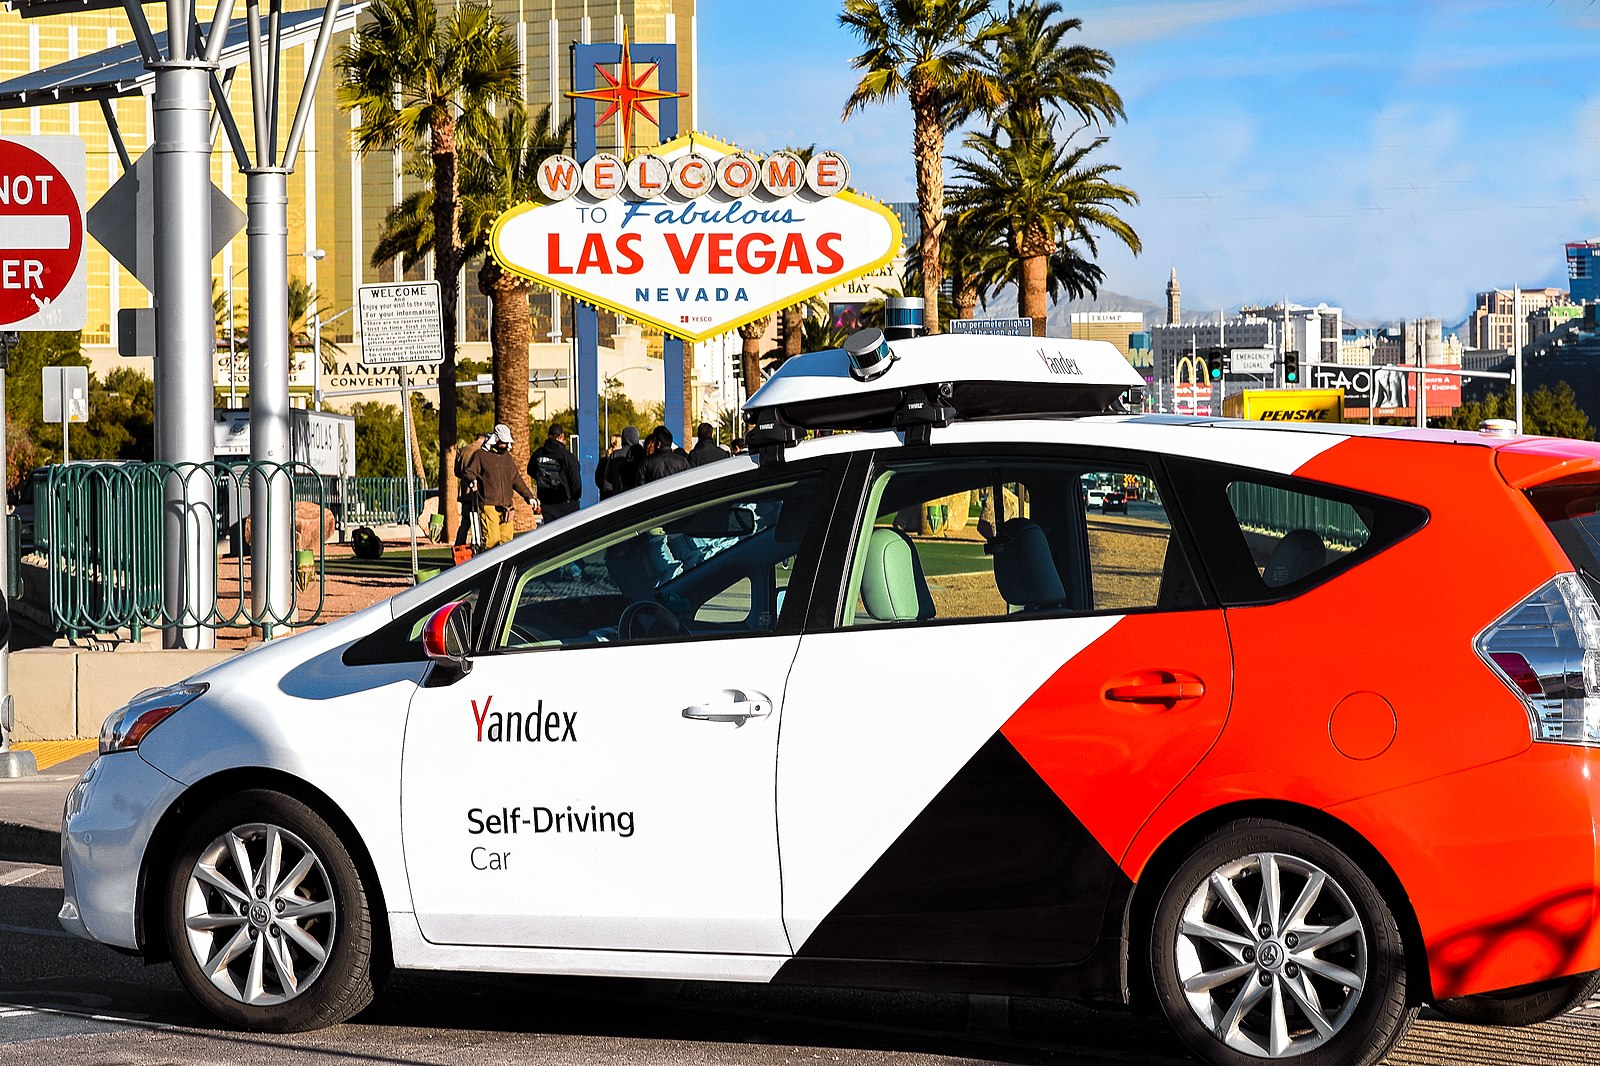 Difference between Self-Driving Cars and Regular Cars